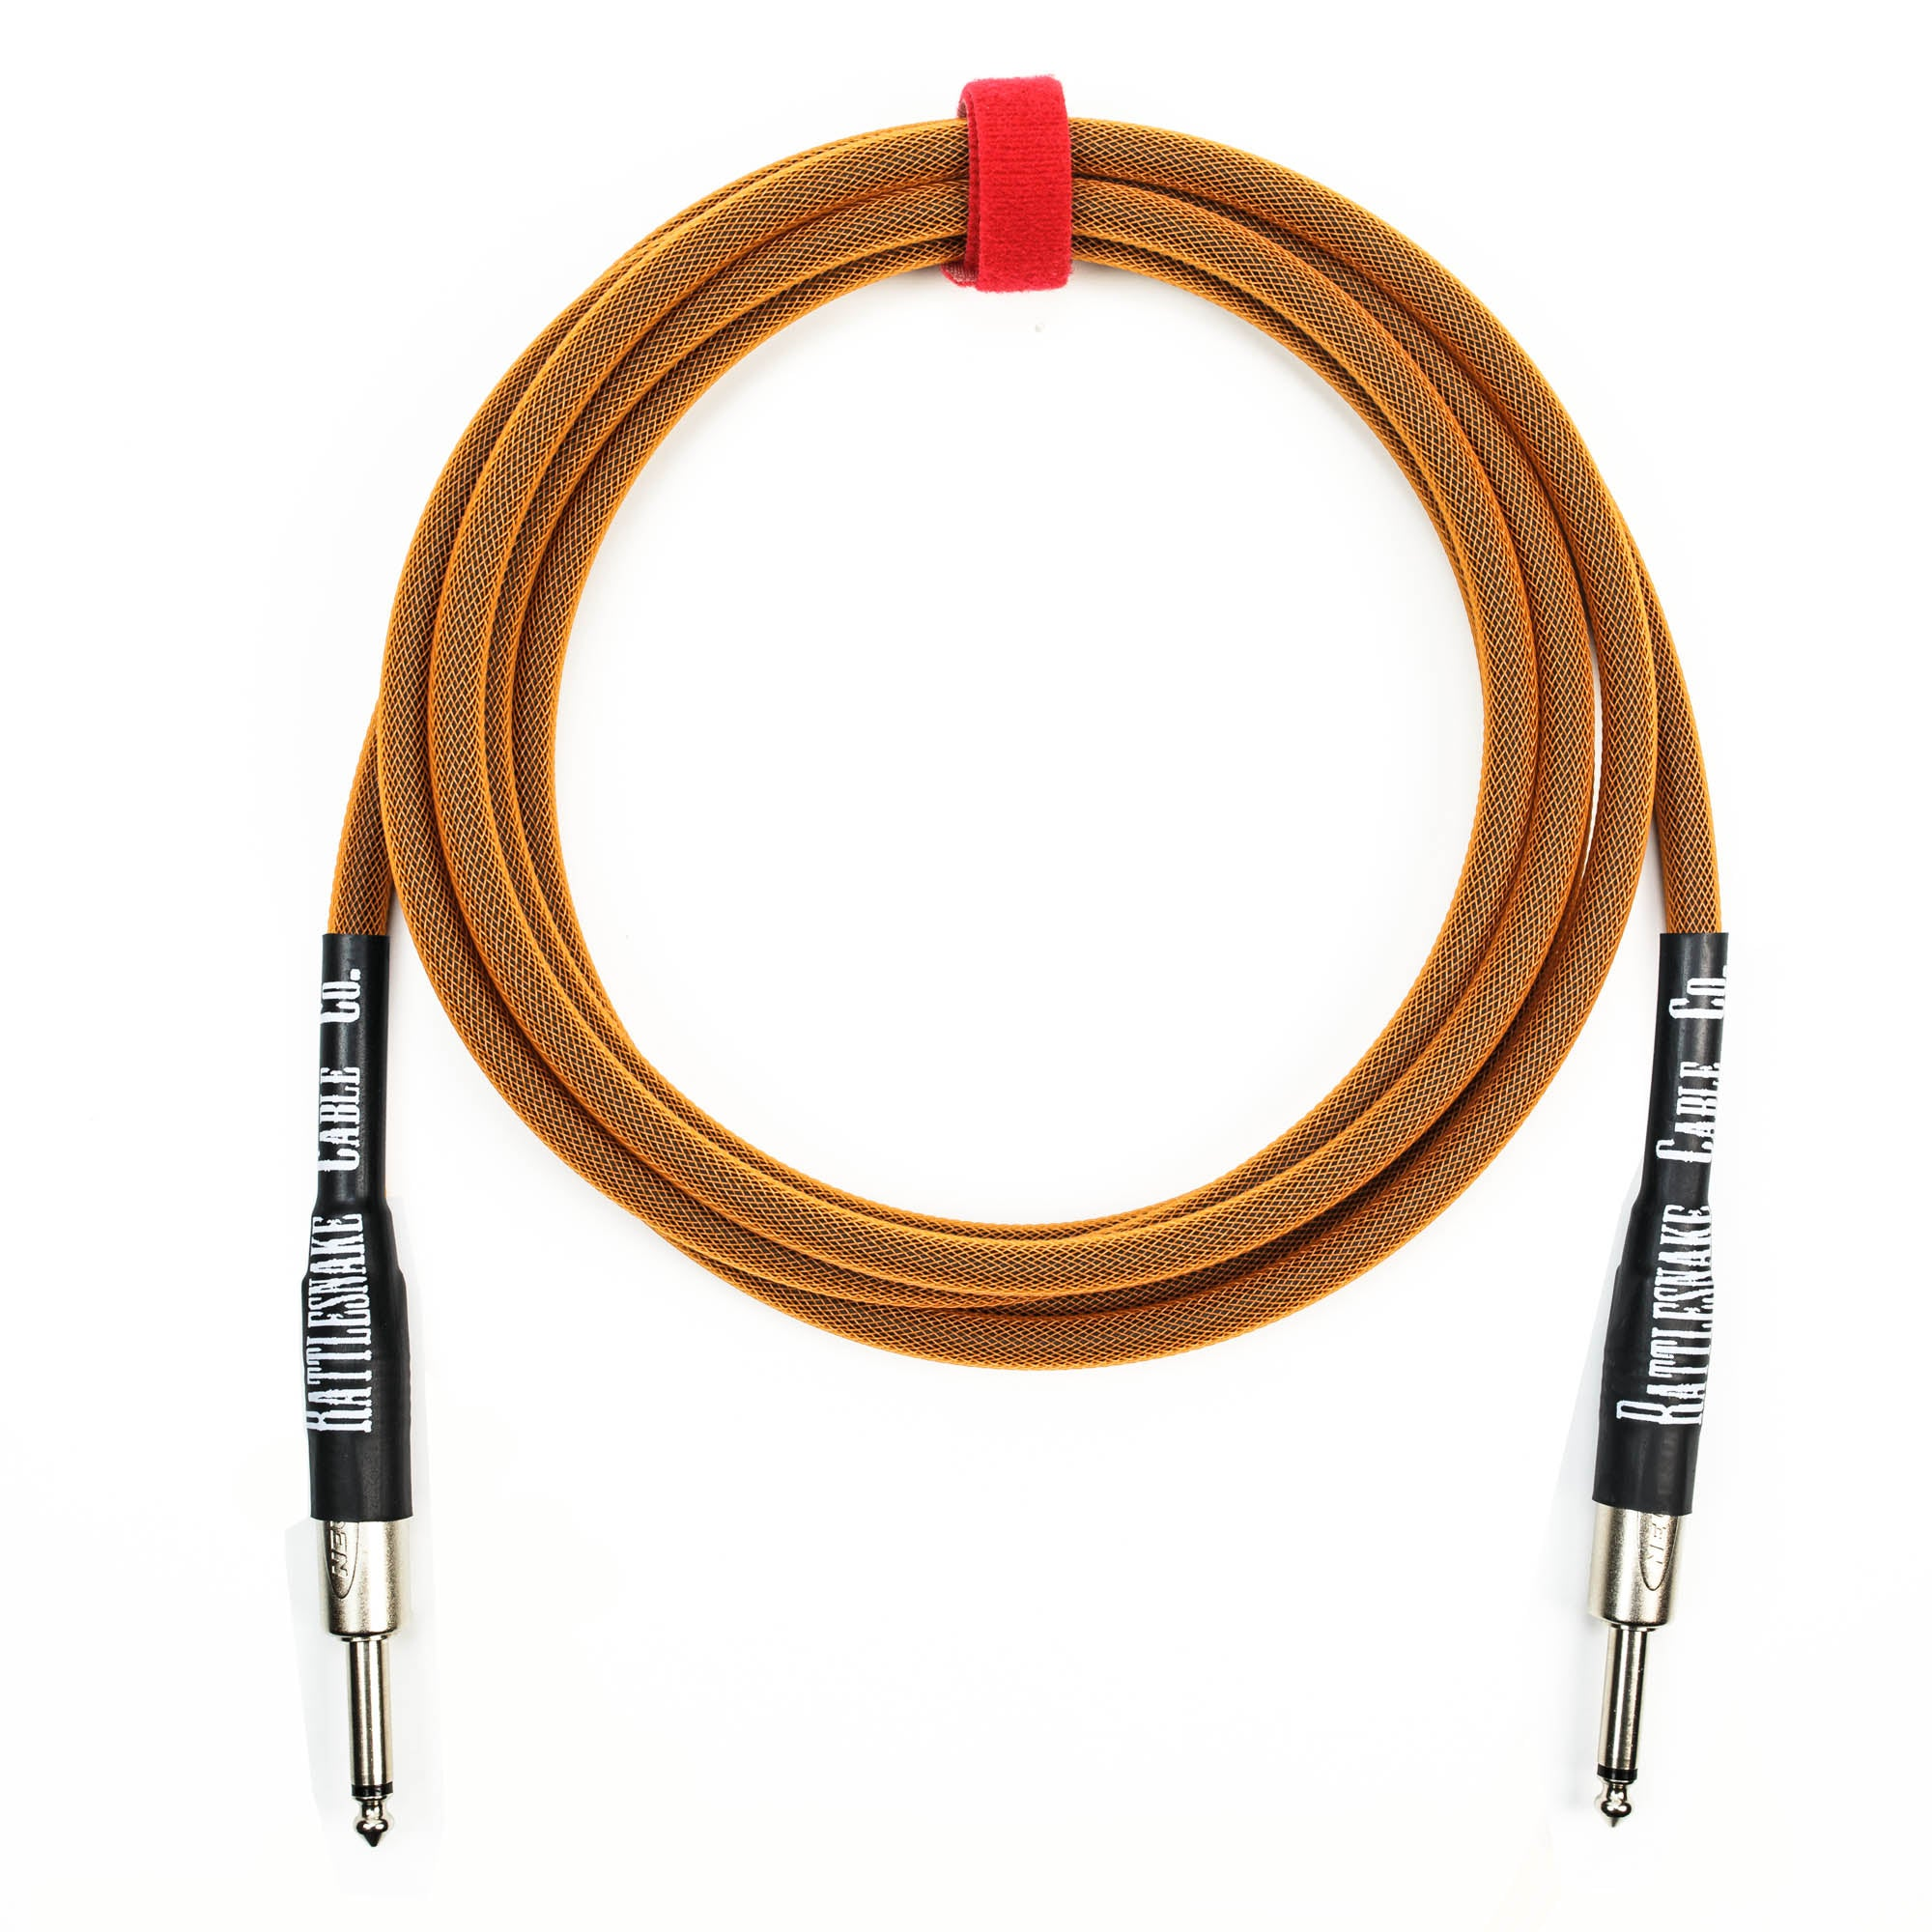 Rattlesnake Cable Company 10' Copper Guitar Cable - Straight Plugs